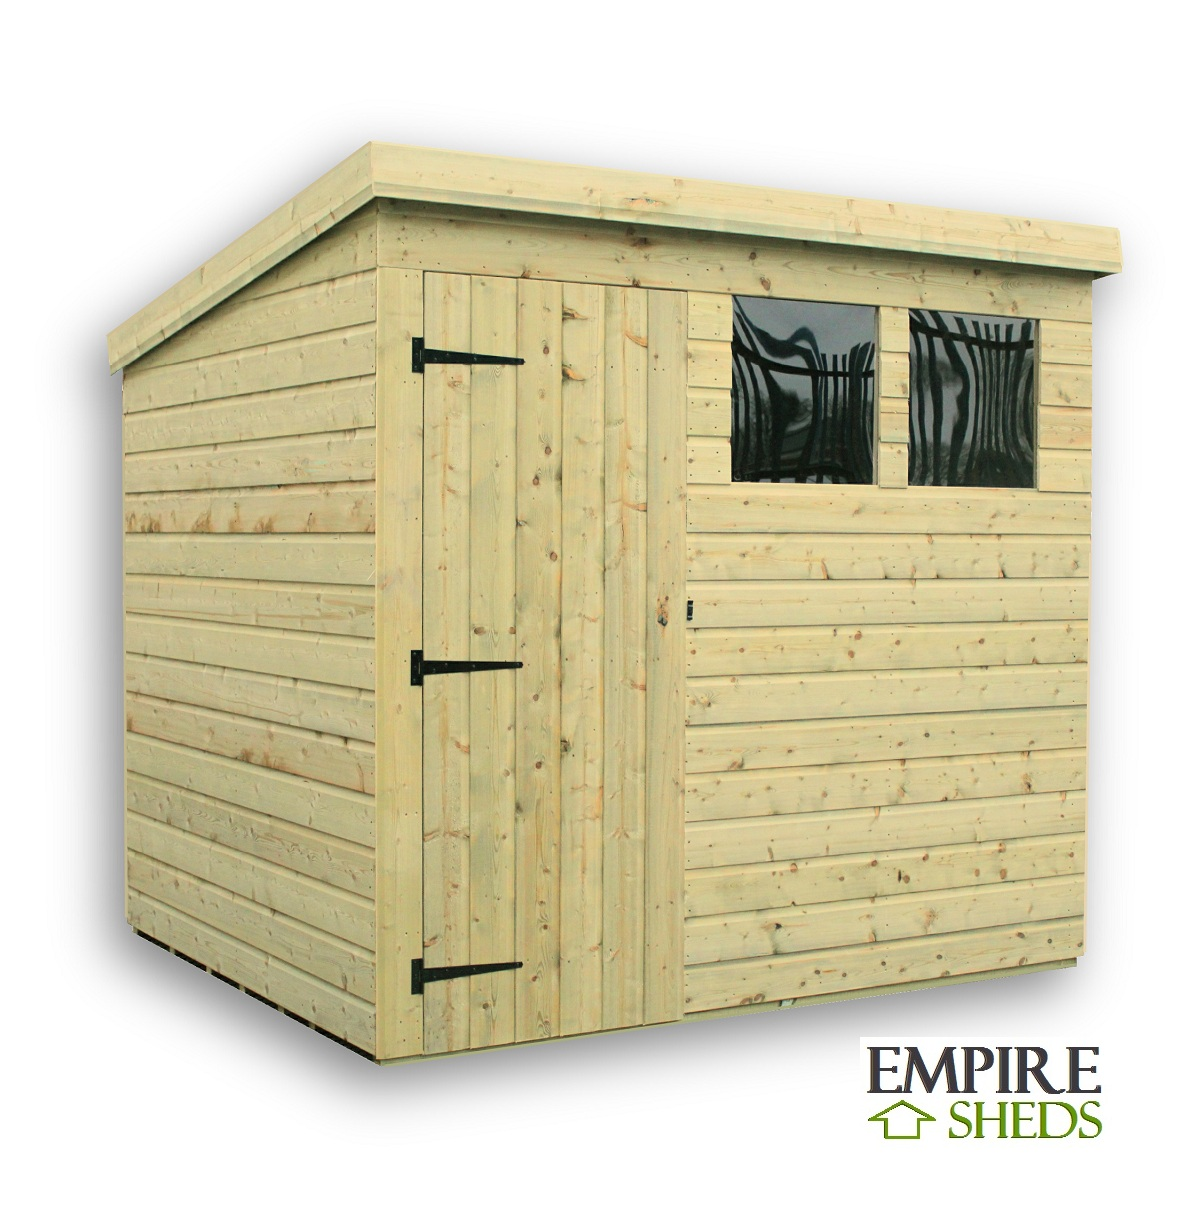 1217 #8E7D3D Shed Doors With Windows Empire Pent Garden Shed 10x4 Pressure Treated  image Shed Doors And Windows 41331200